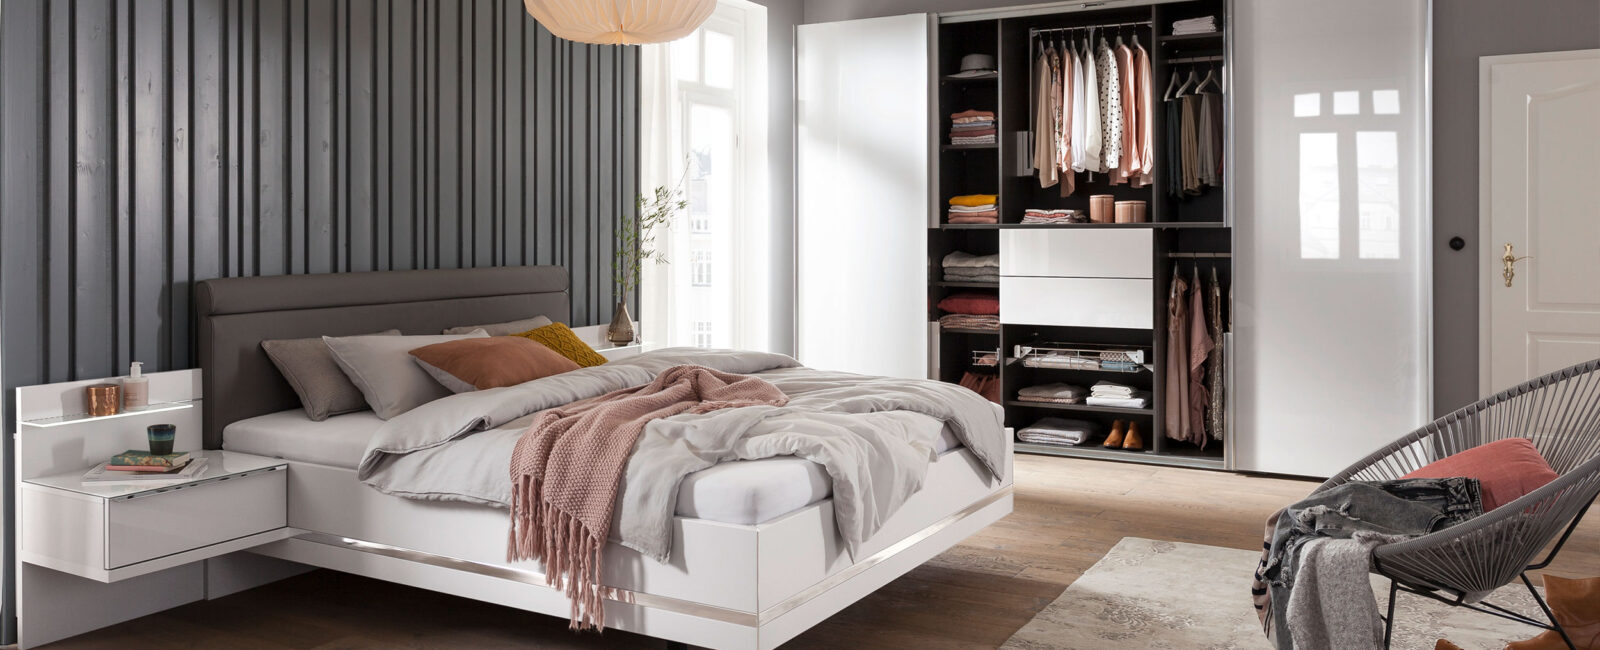 nolte bedroom wardrobes with sliding doors